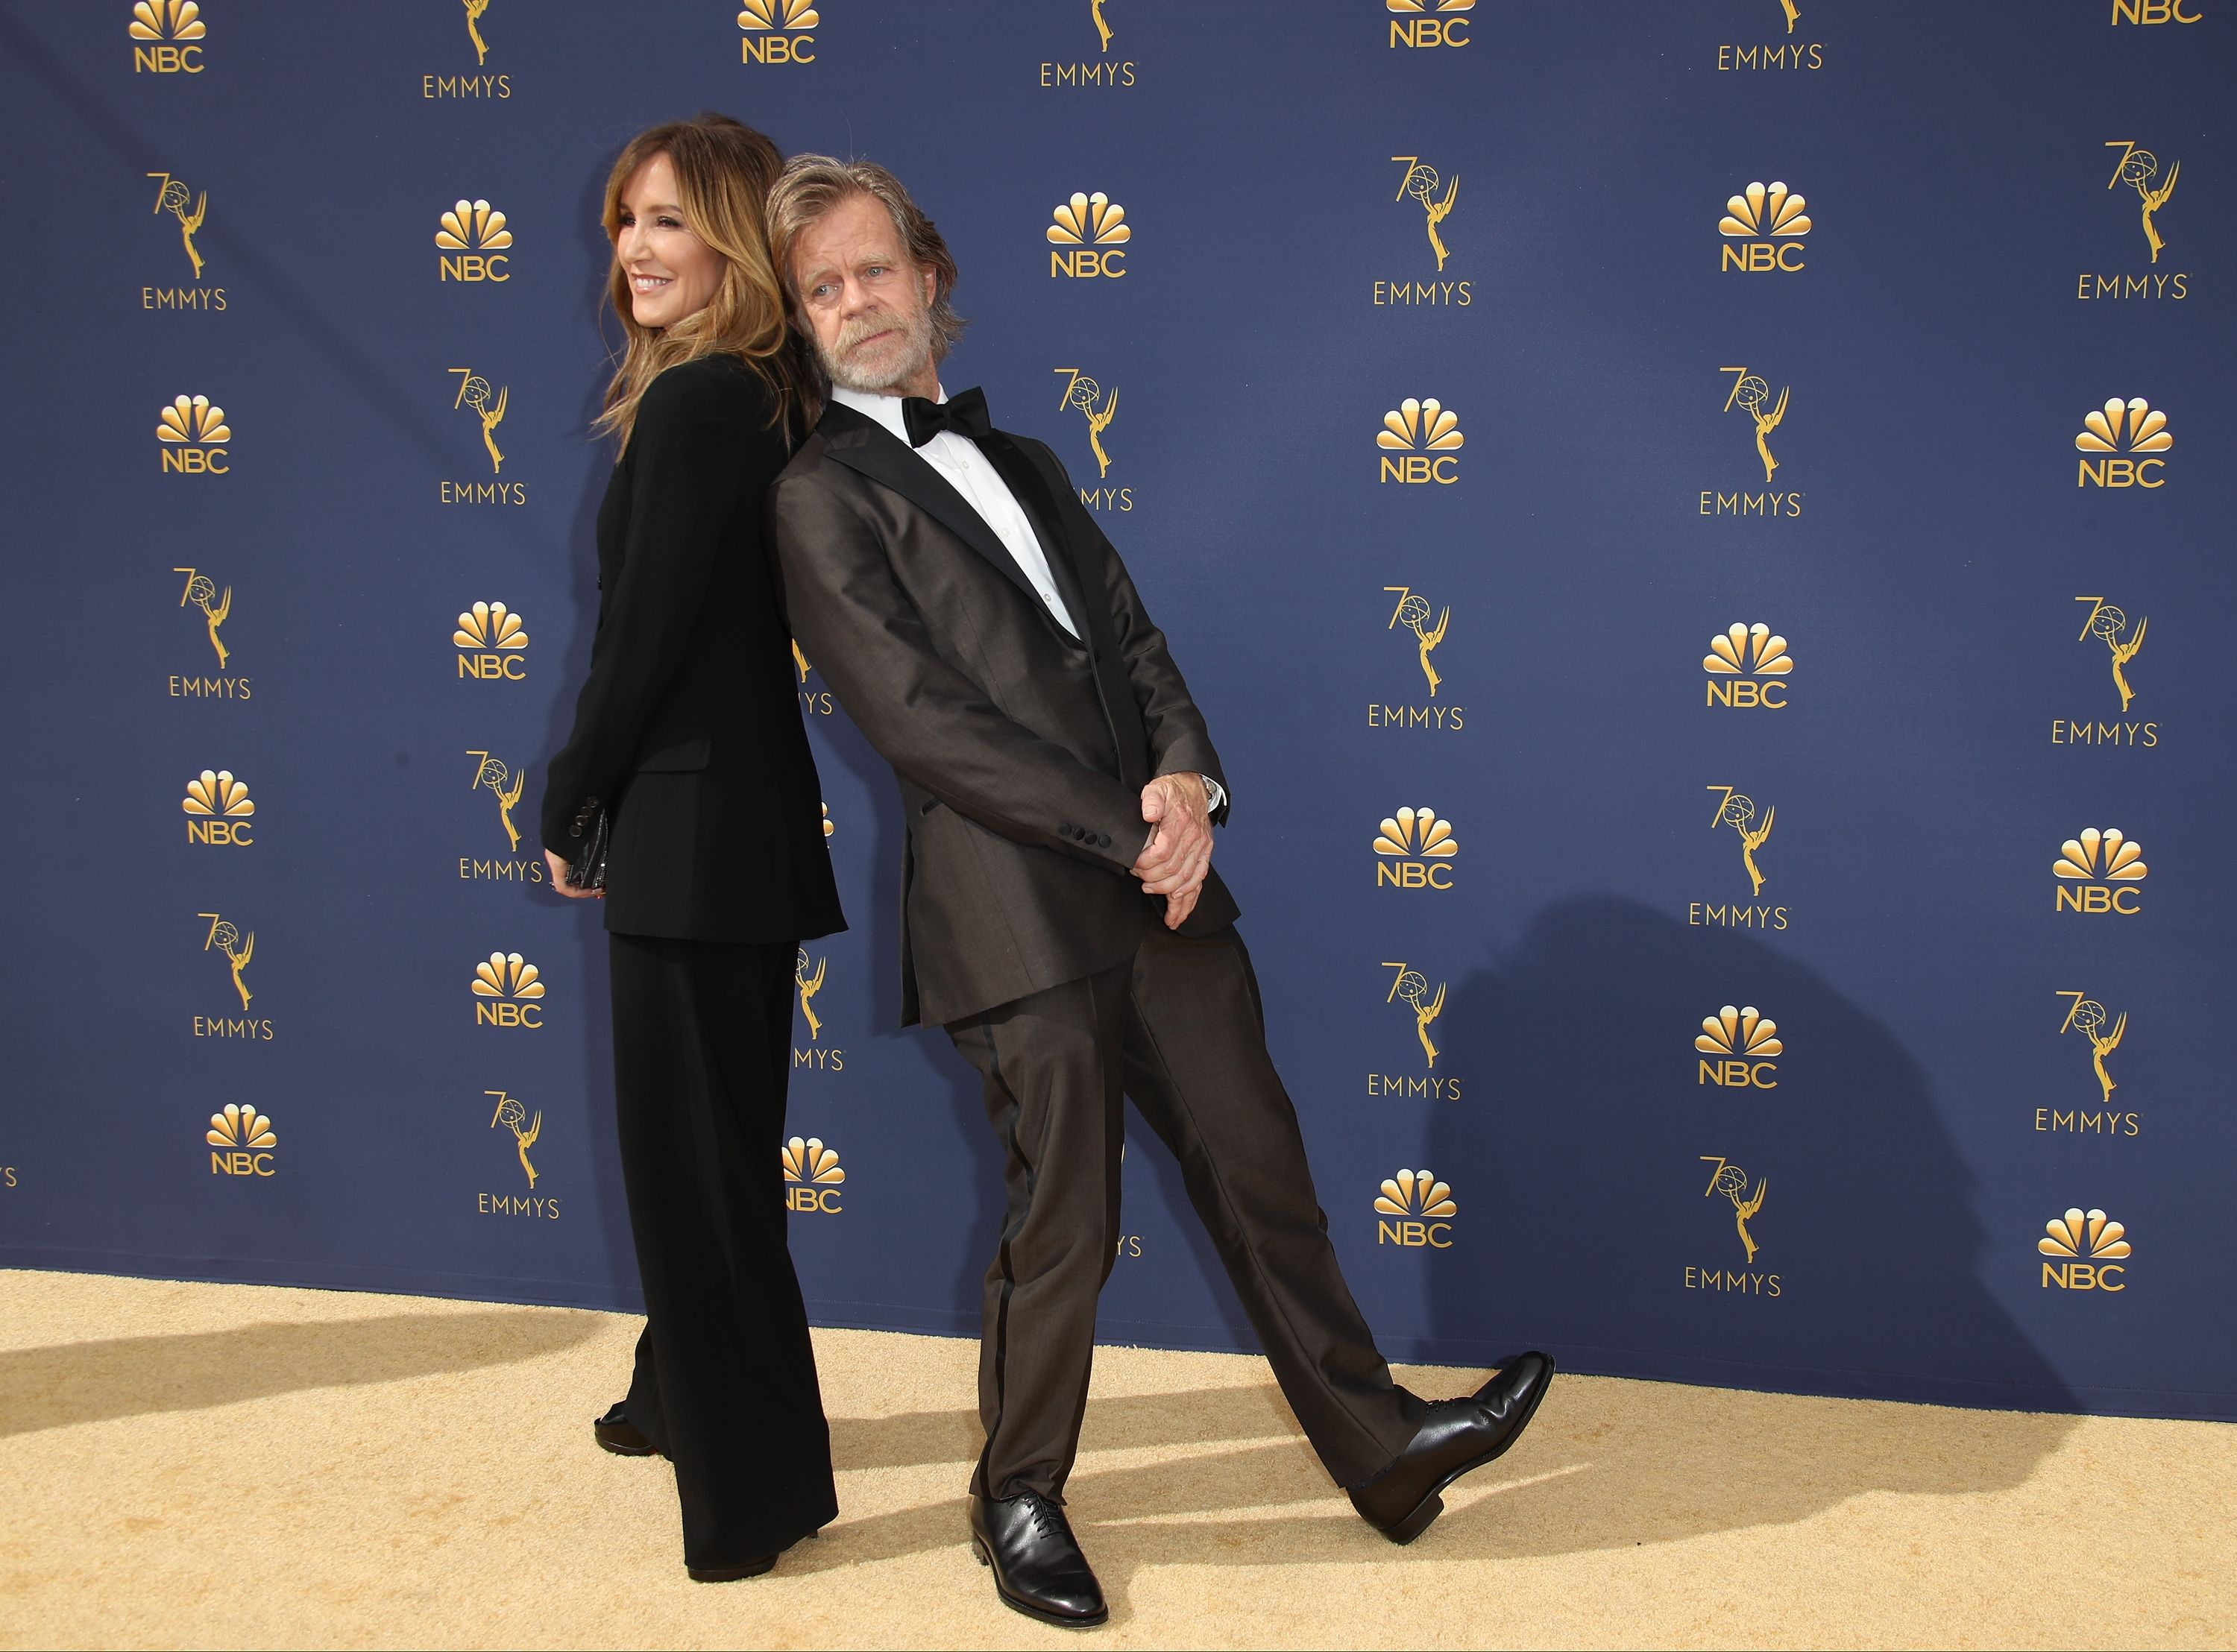 Felicity Huffman and William H. Macy attend the 70th Emmy Awards / Getty Images